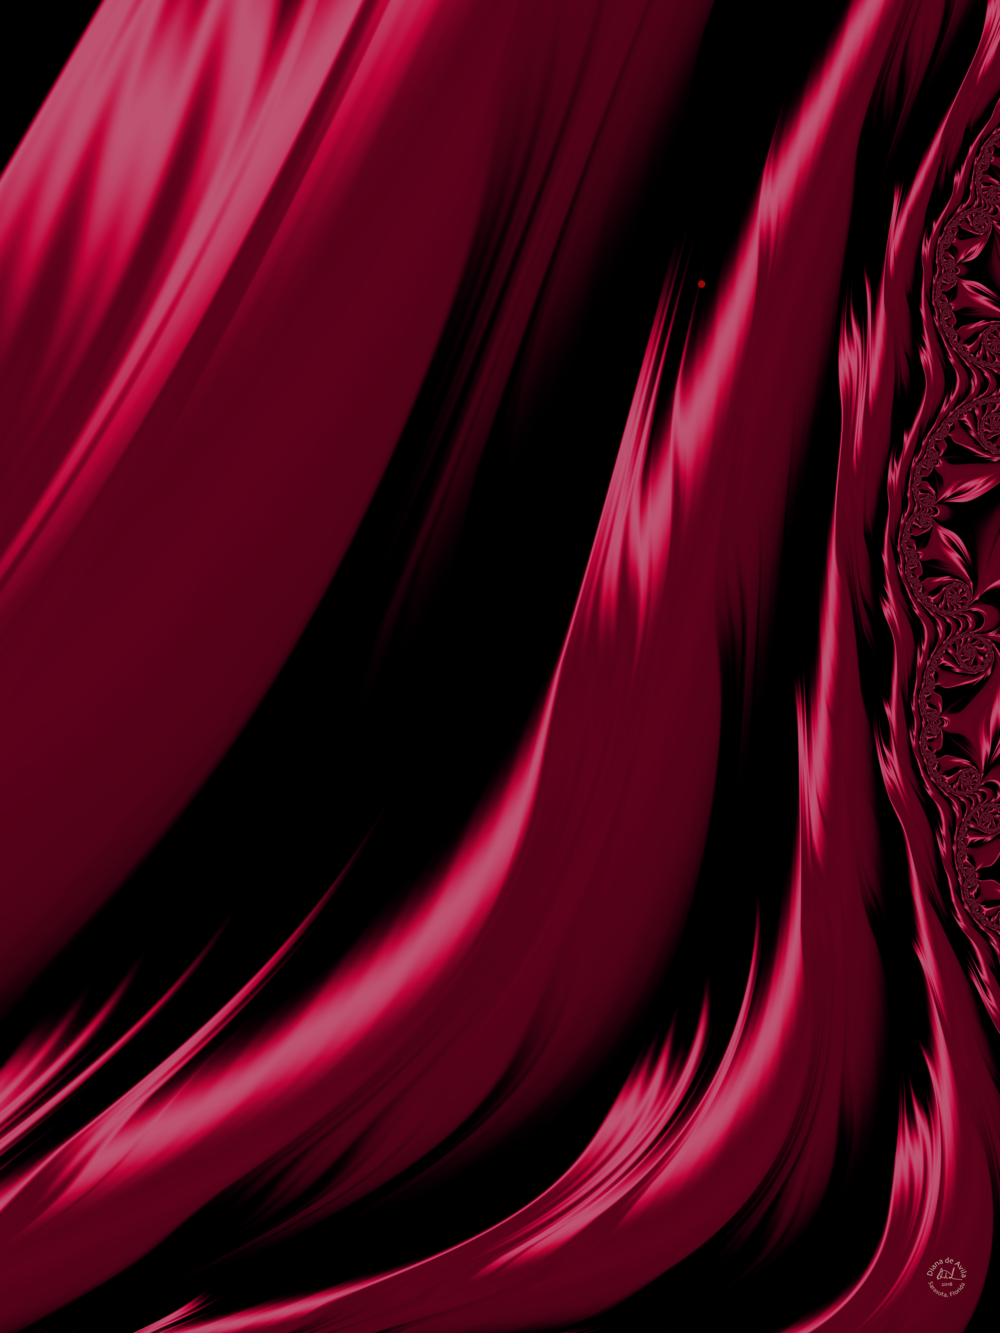 The Red Gown   A Fractal segment.